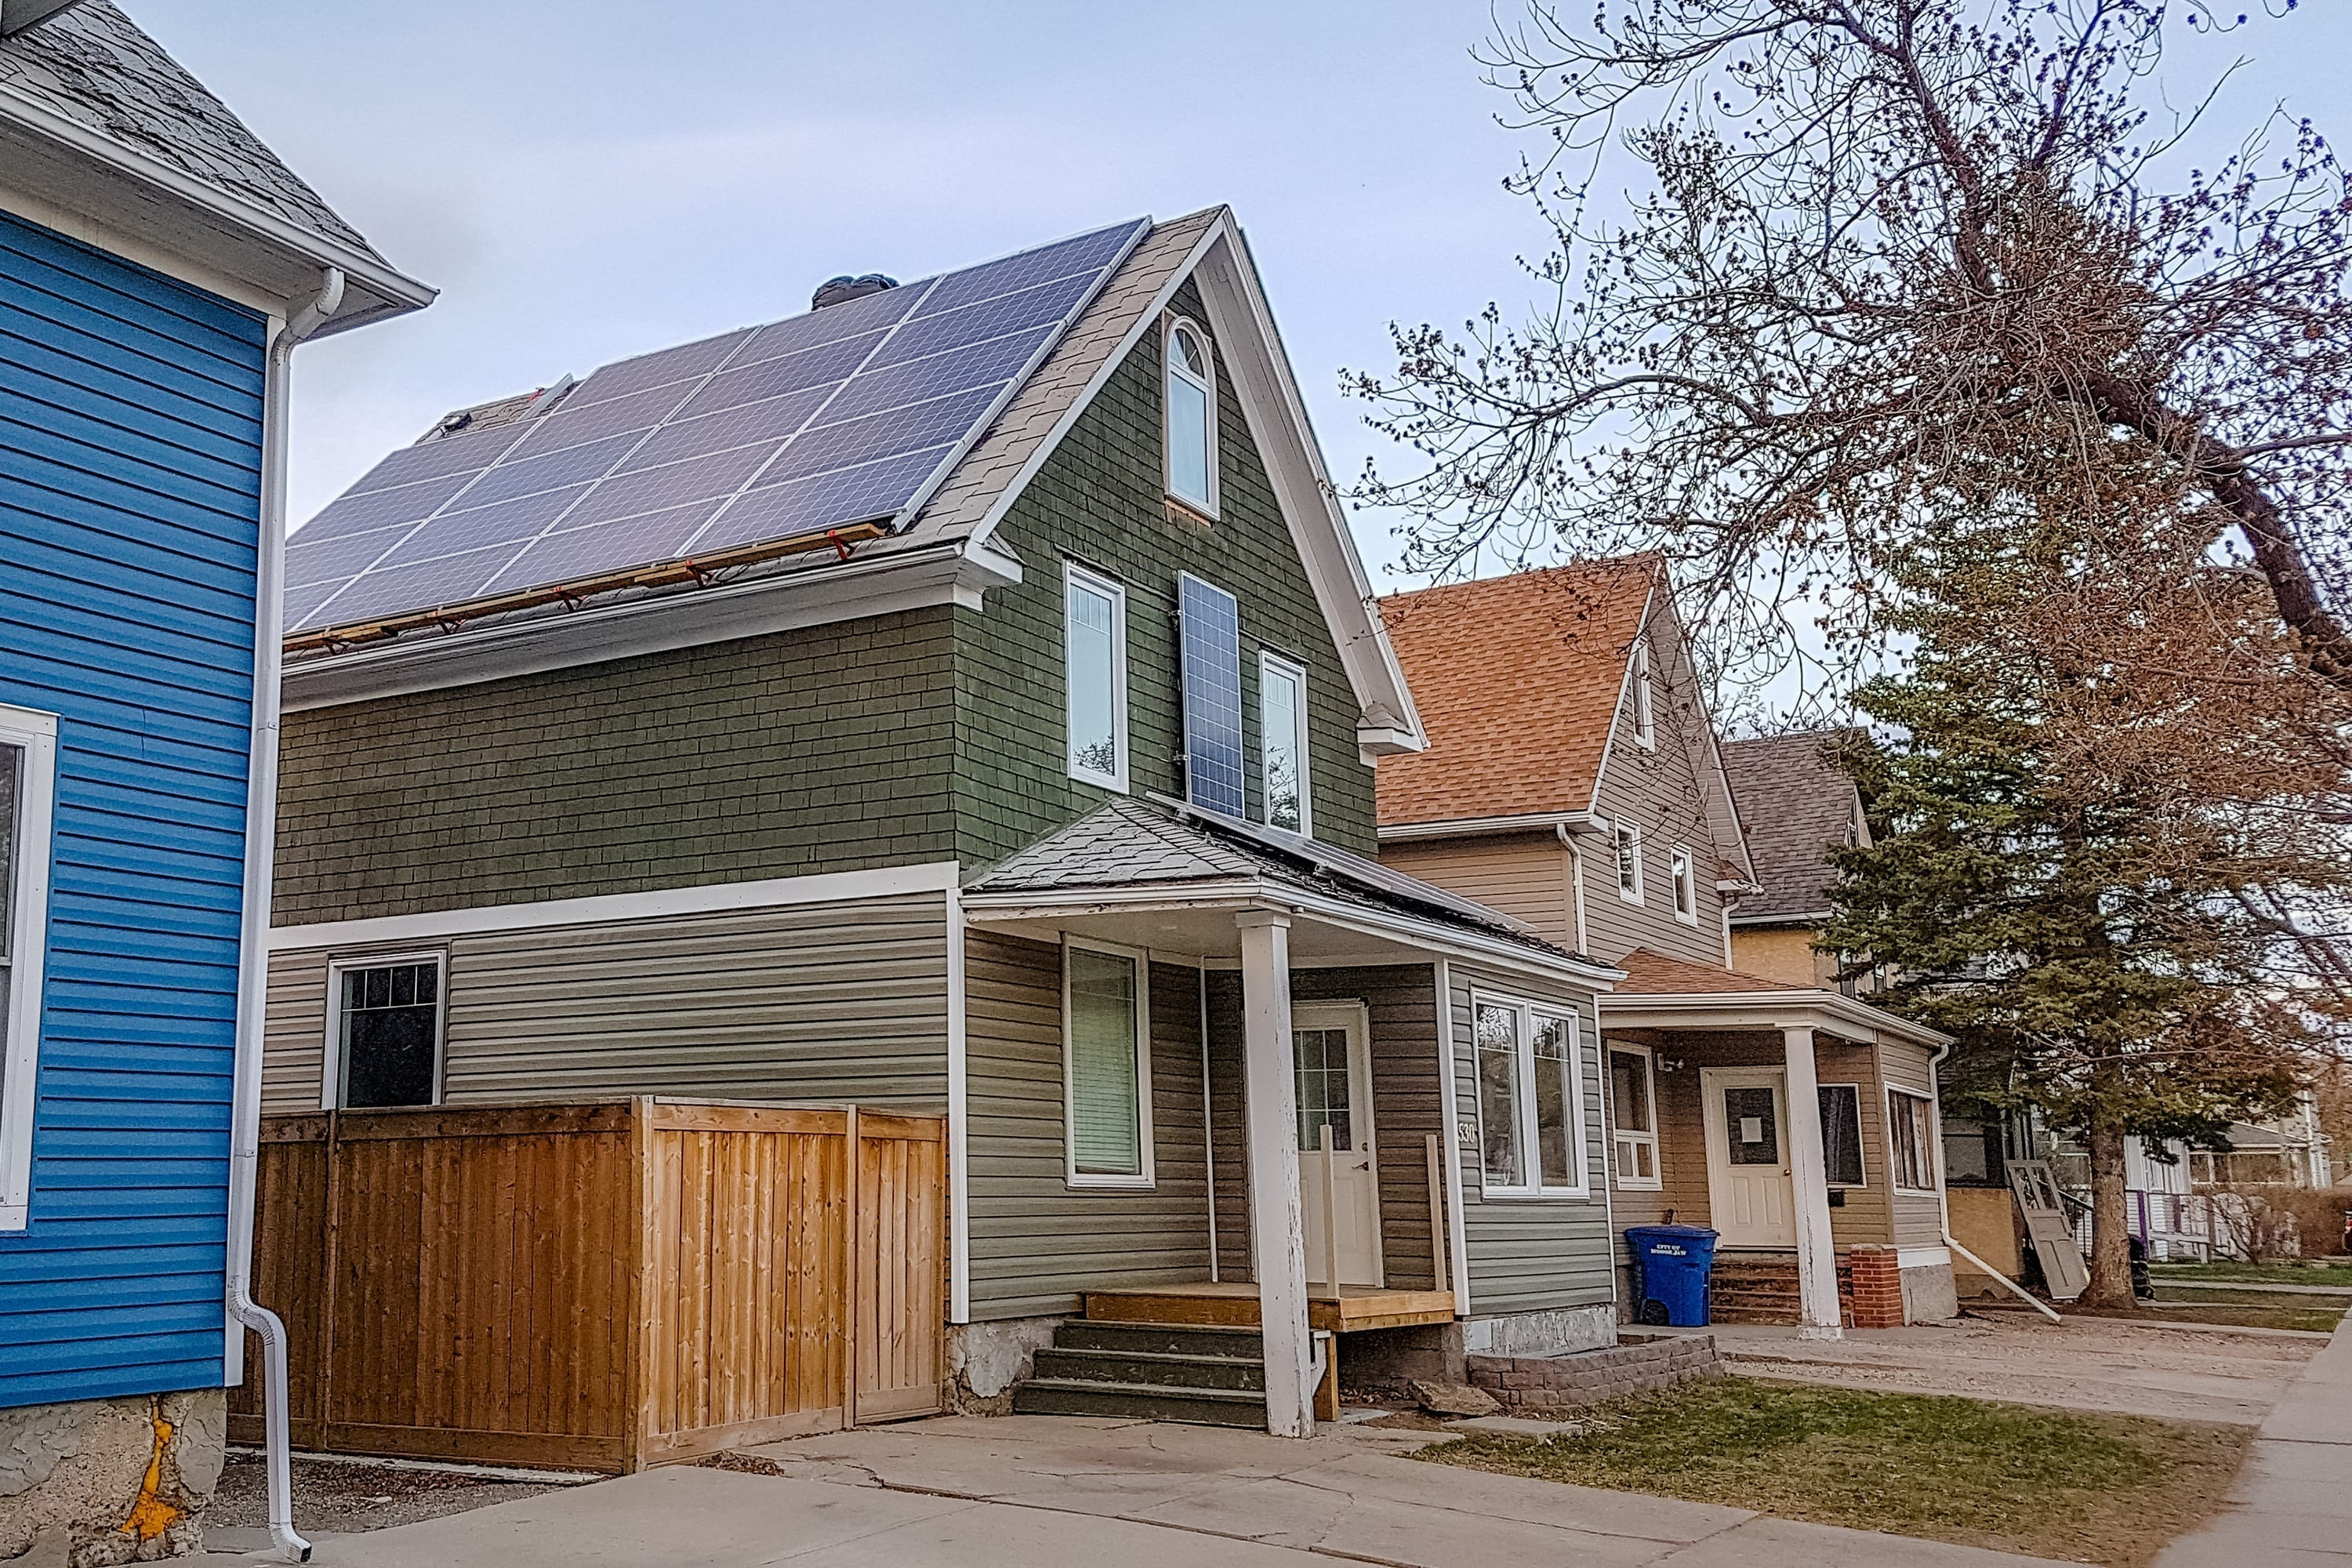 All Electric Solar Home Moose Jaw Saskatchewan Canada